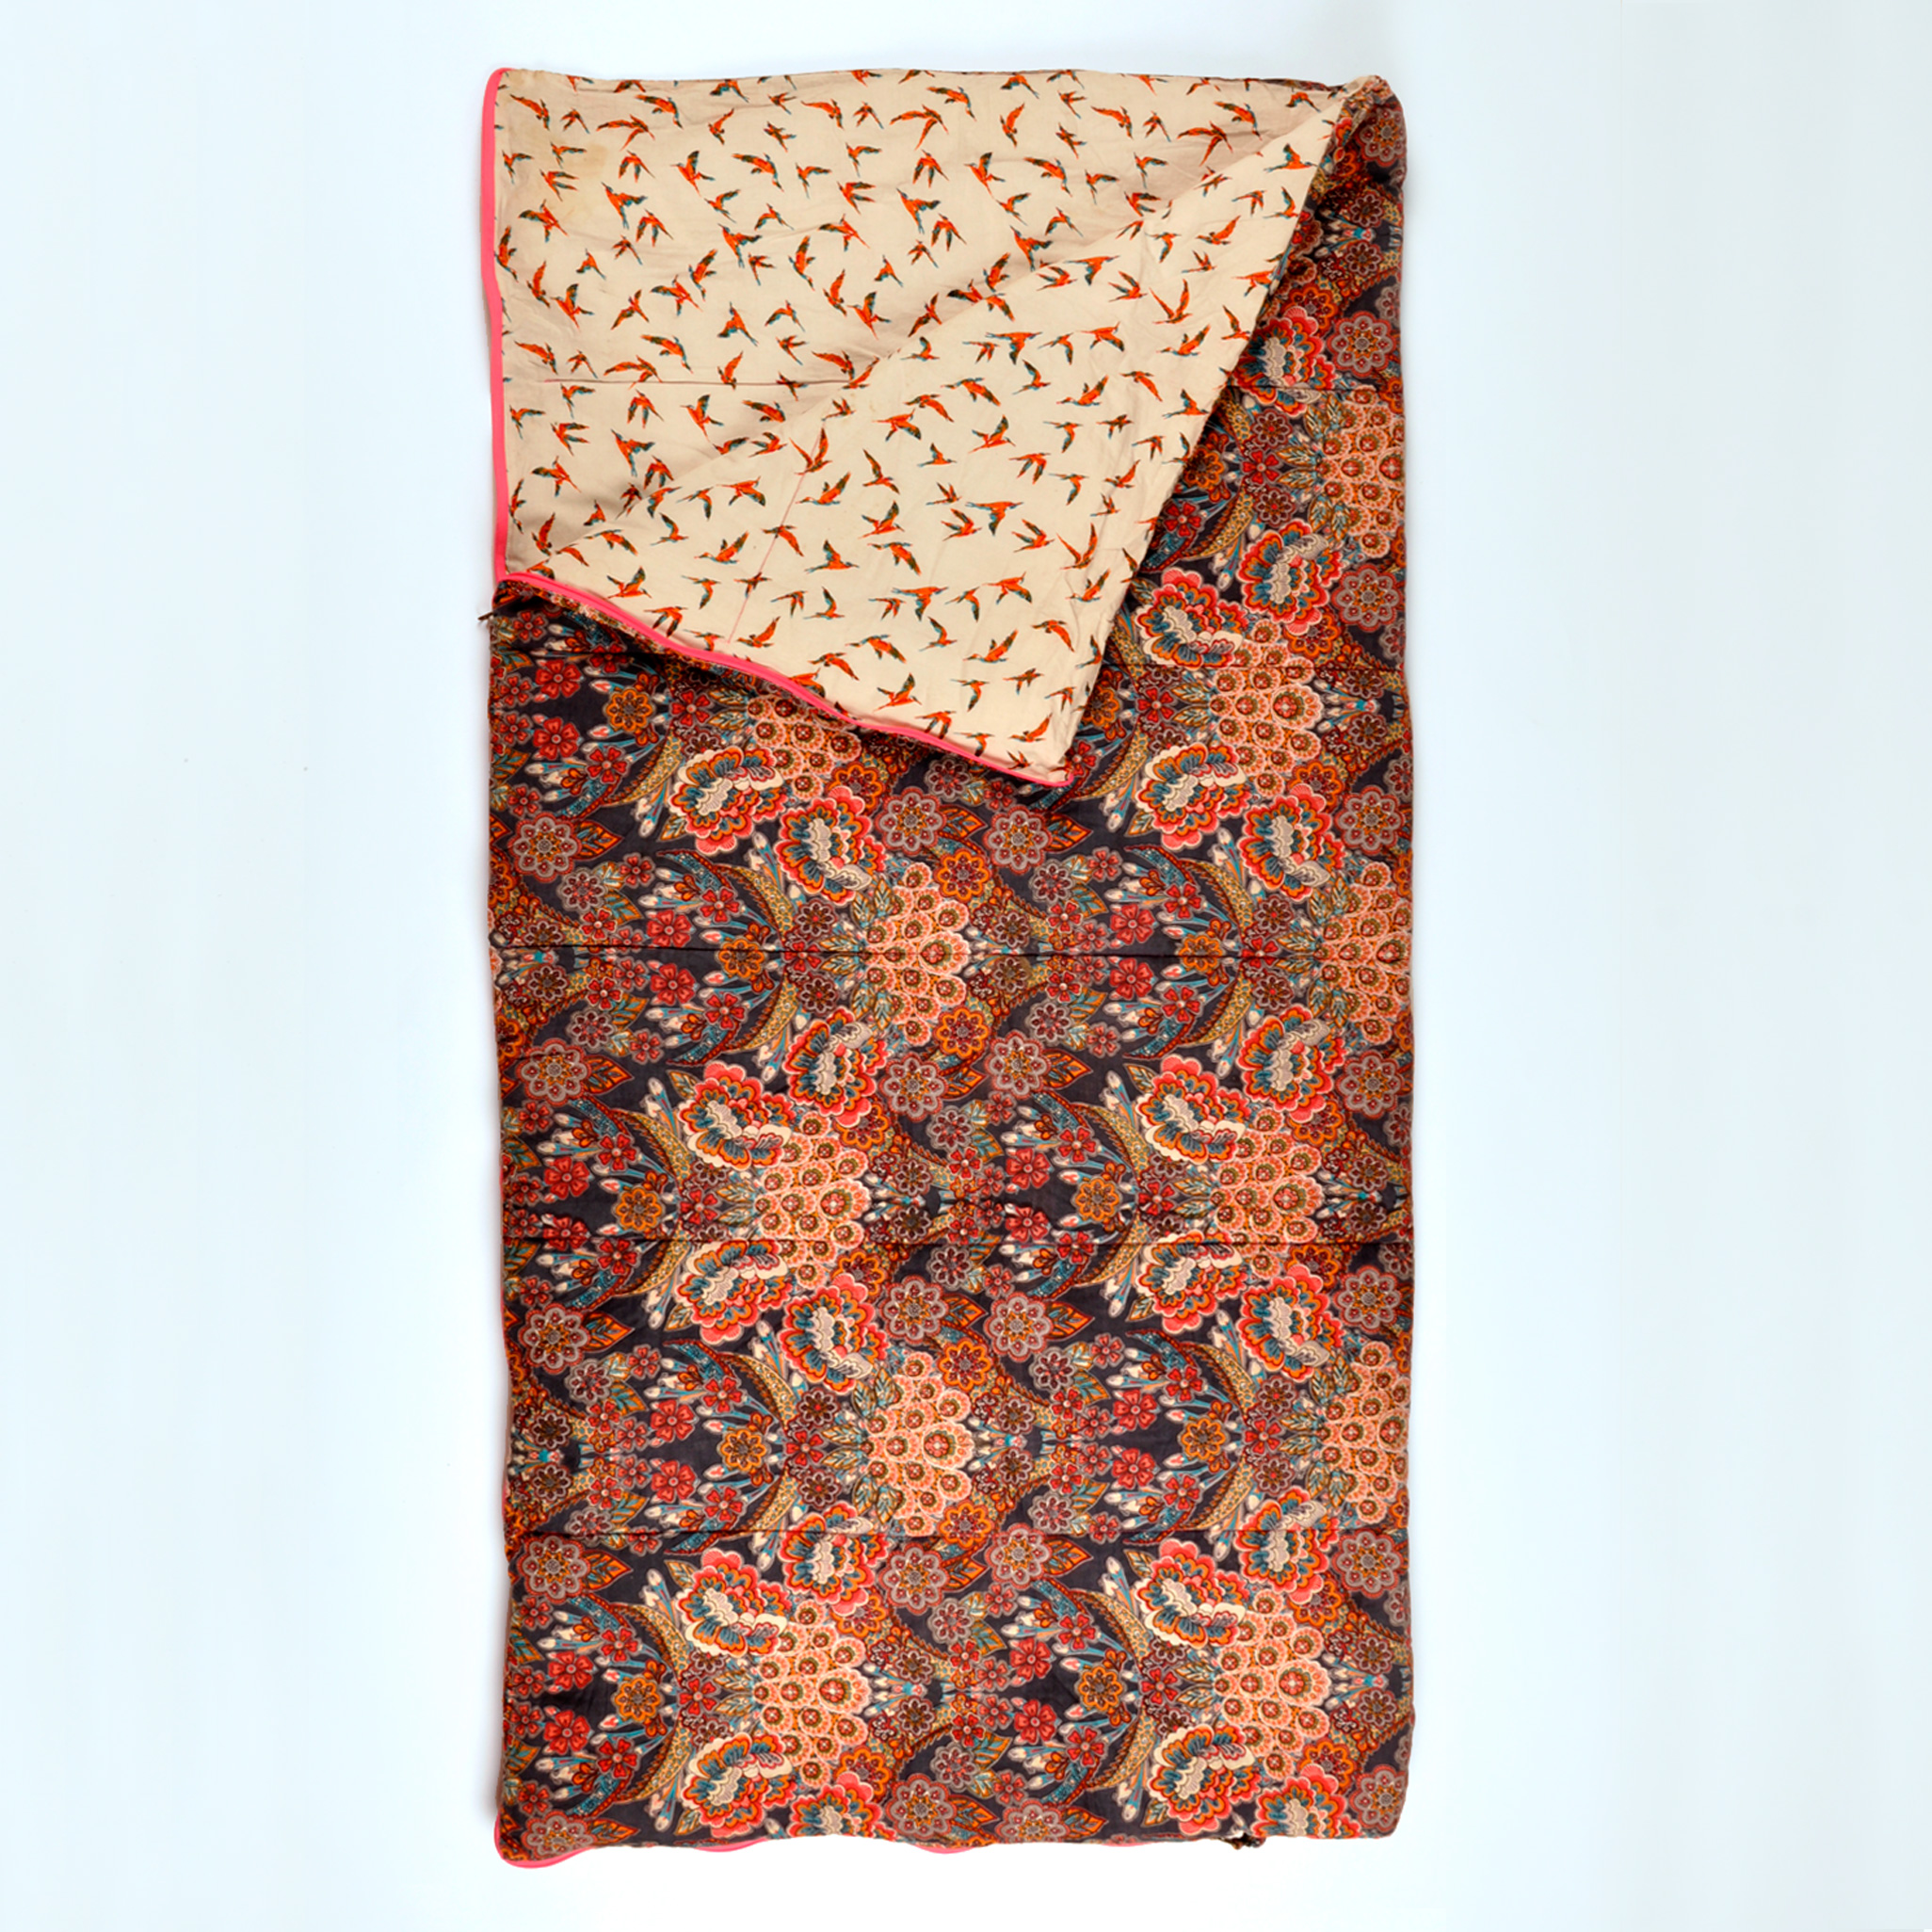 Sleeping Beauties sleeping bag in Indian Tapestry. Available in single and longer length sizes.